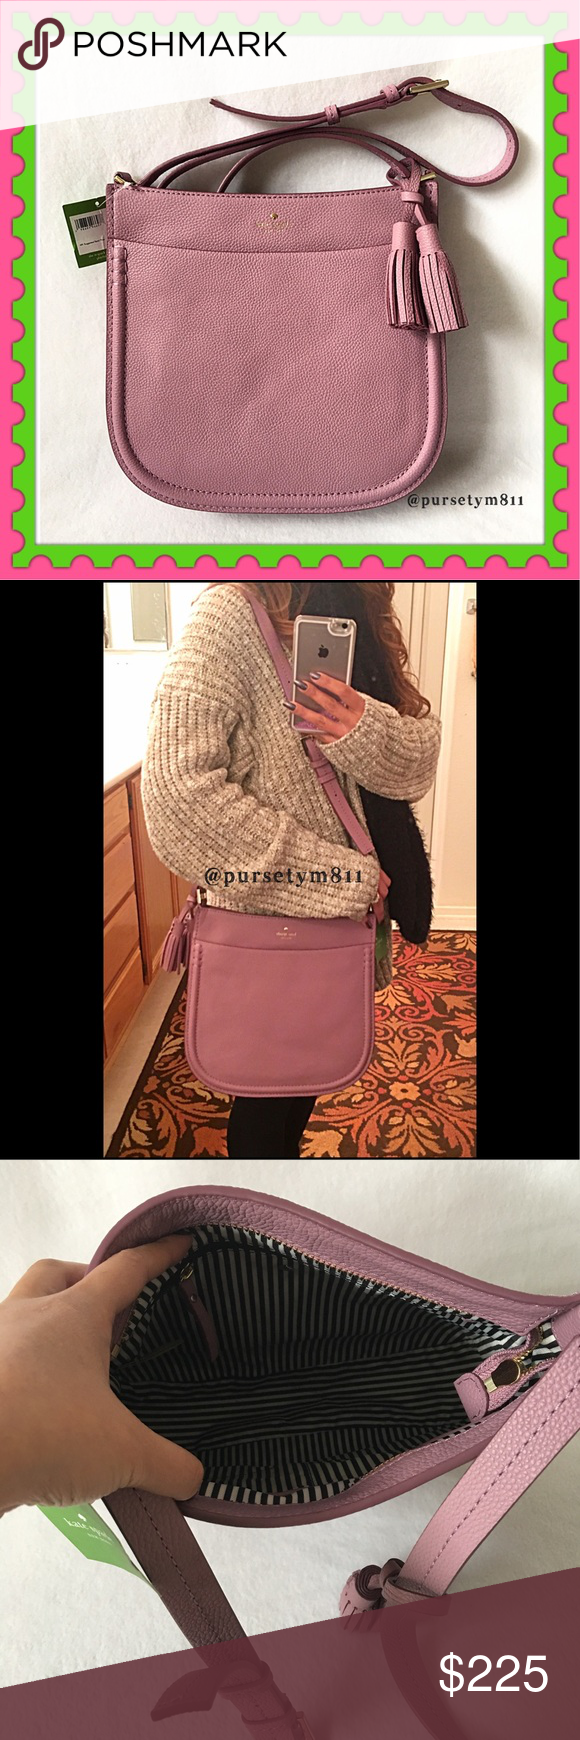 Authentic Kate Spade Leather Tassel Handbag AUTHENTIC ♠️️ Beautiful rum raisin color gorgeous leather handbag from Kate Spade Bag approximate measurements: 13 x 9 x 4.5 Crossbody & shoulder bag w/ adjustable long strap. 3 pockets inside & 1 front exterior compartment. Zipper top closure. New w/ tag. NO TRADE ❌ Price is firm. kate spade Bags #zippertop Authentic Kate Spade Leather Tassel Handbag AUTHENTIC ♠️️ Beautiful rum raisin color gorgeous leather handbag from Kate Spade Bag #zippertop